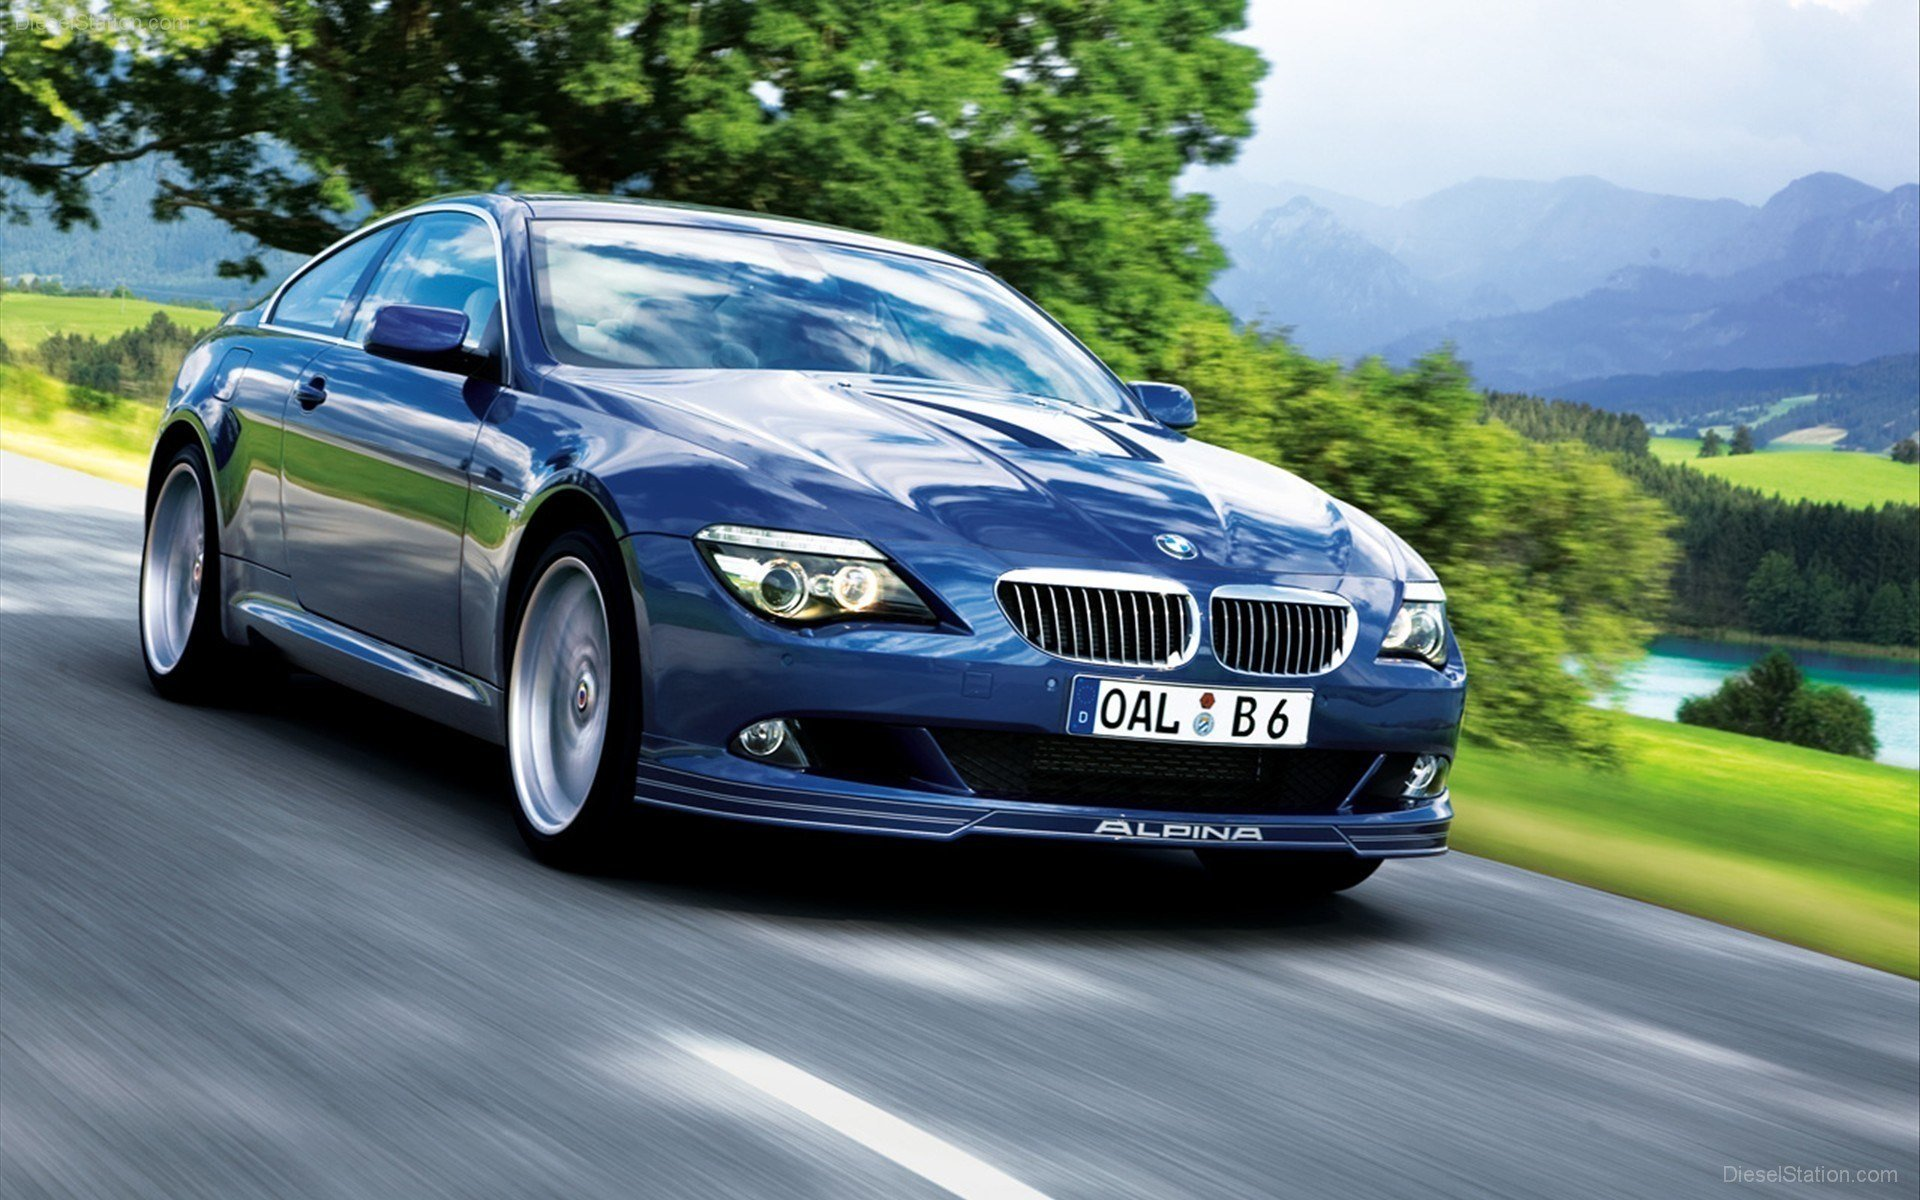 Latest Alpina Bmw 6 Series M6 Blue Cars Wallpaper Allwallpaper Free Download